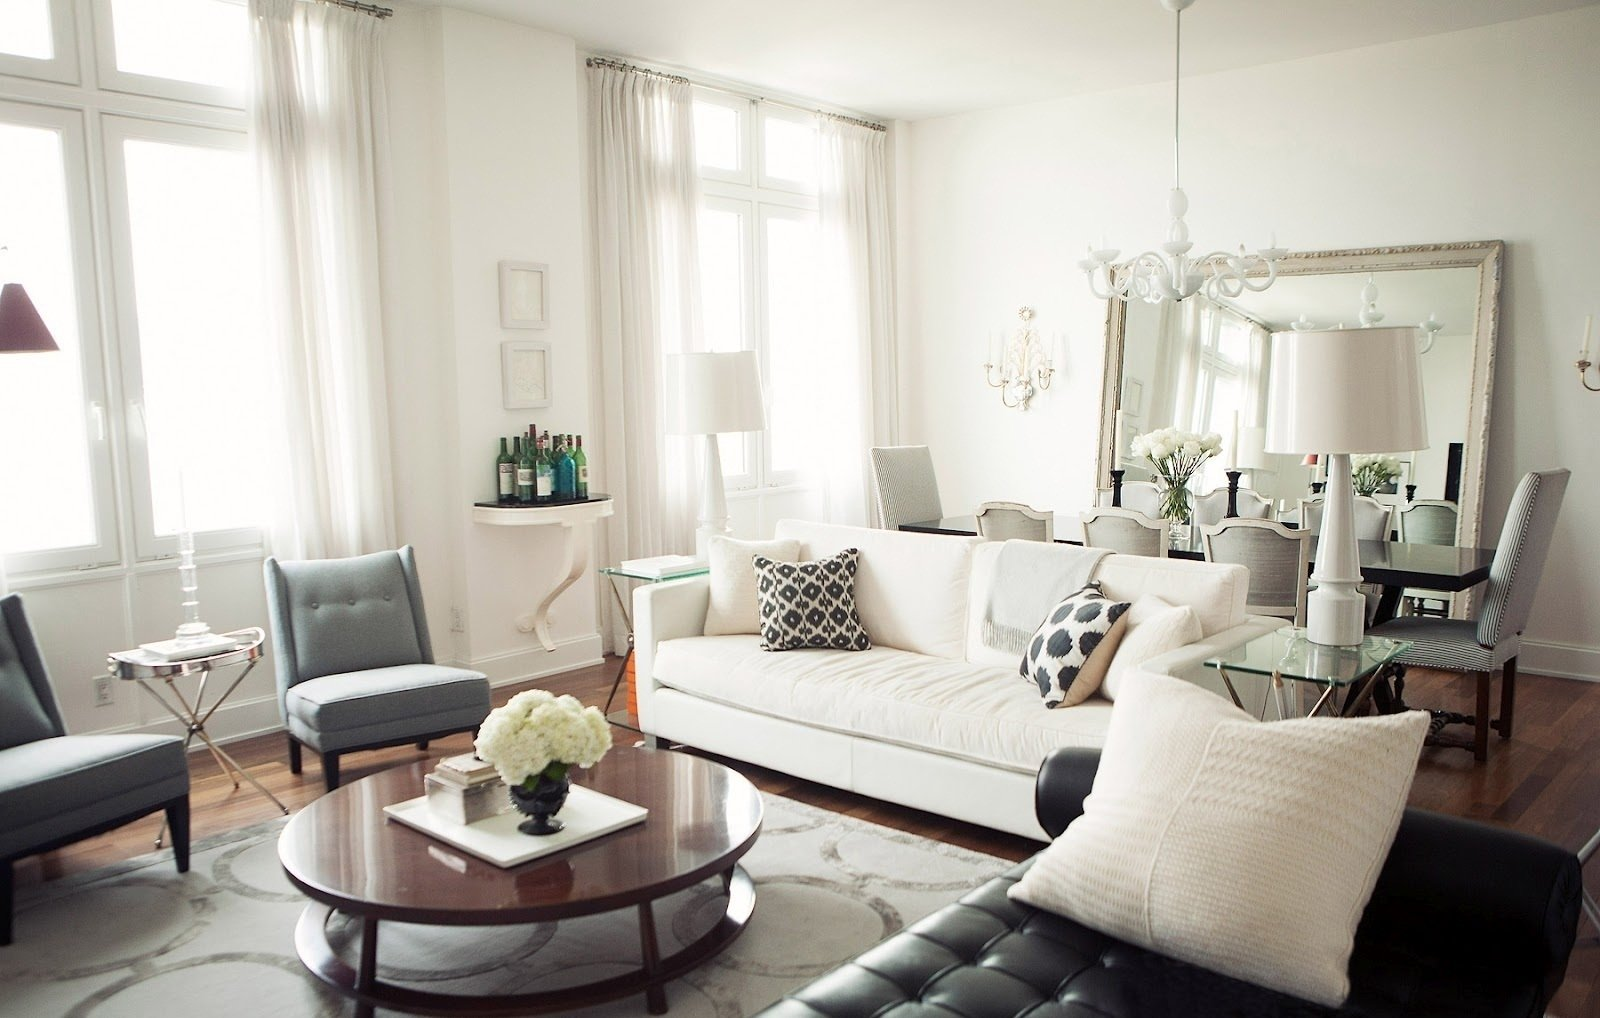 10 Ideal Living Room Dining Room Combo Decorating Ideas living room and dining room combo decorating ideas for fine best 2020